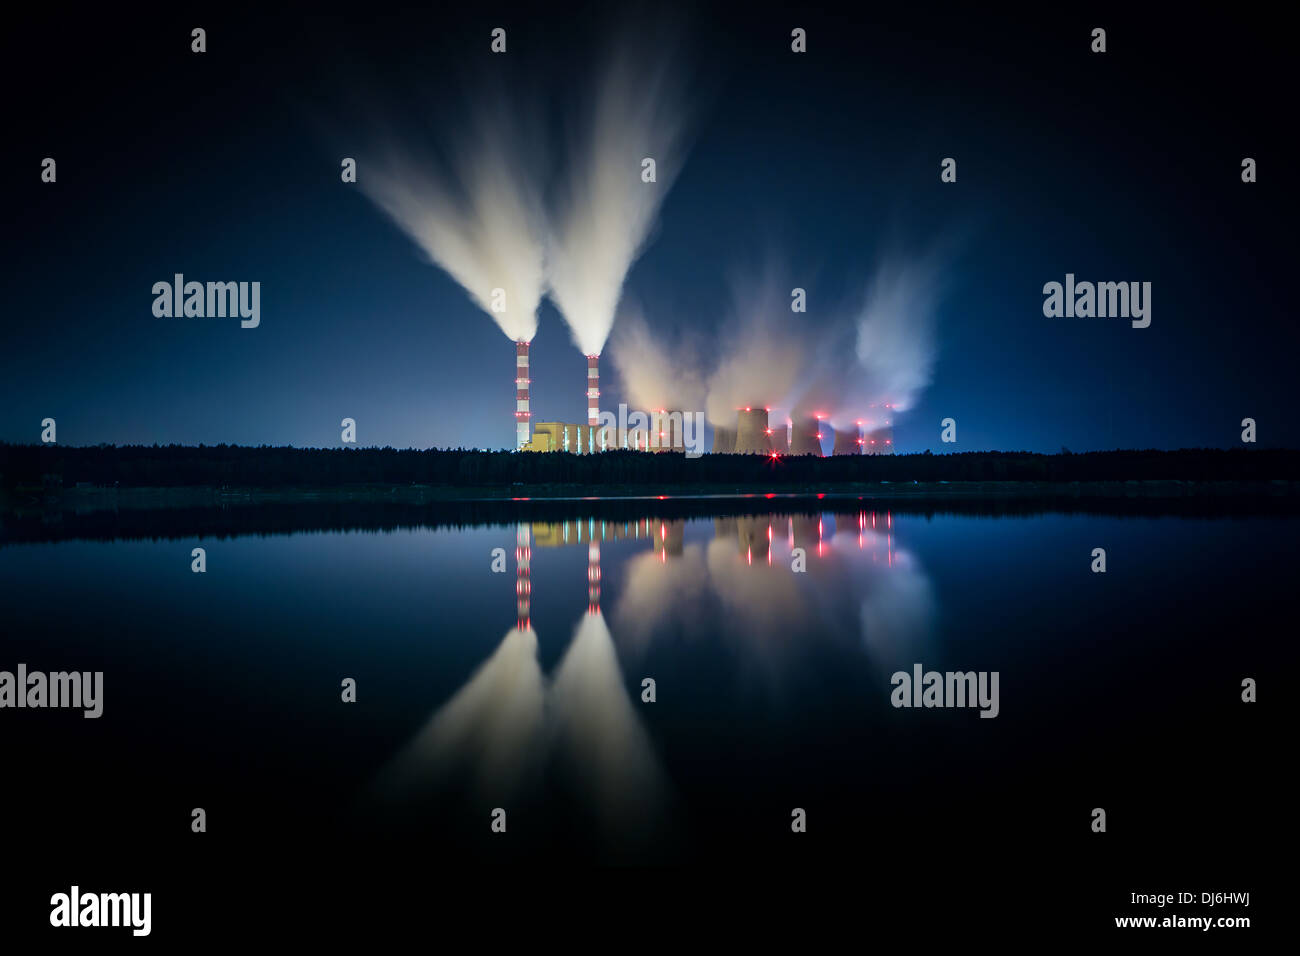 coal power station and night - Belchatow Poland. - Stock Image